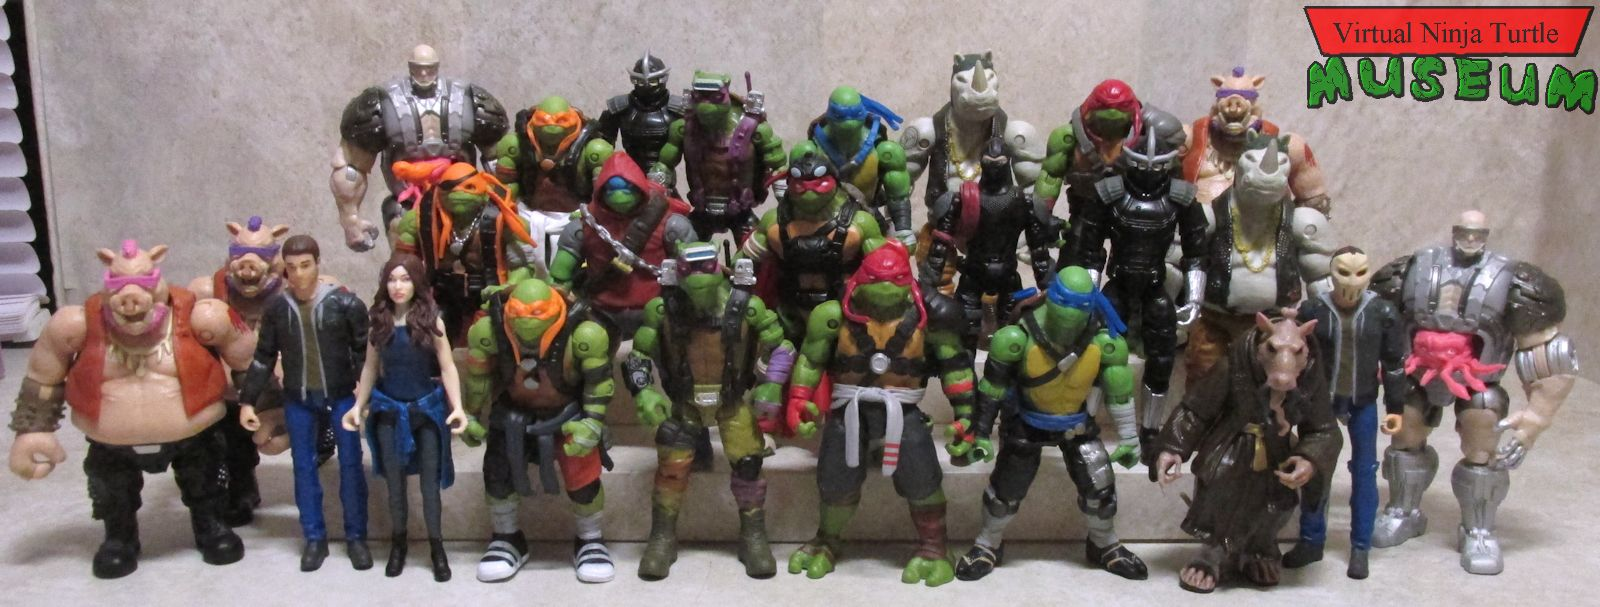 Teenage Mutant Ninja Turtles Out Of The Shadows Basic Figures Review